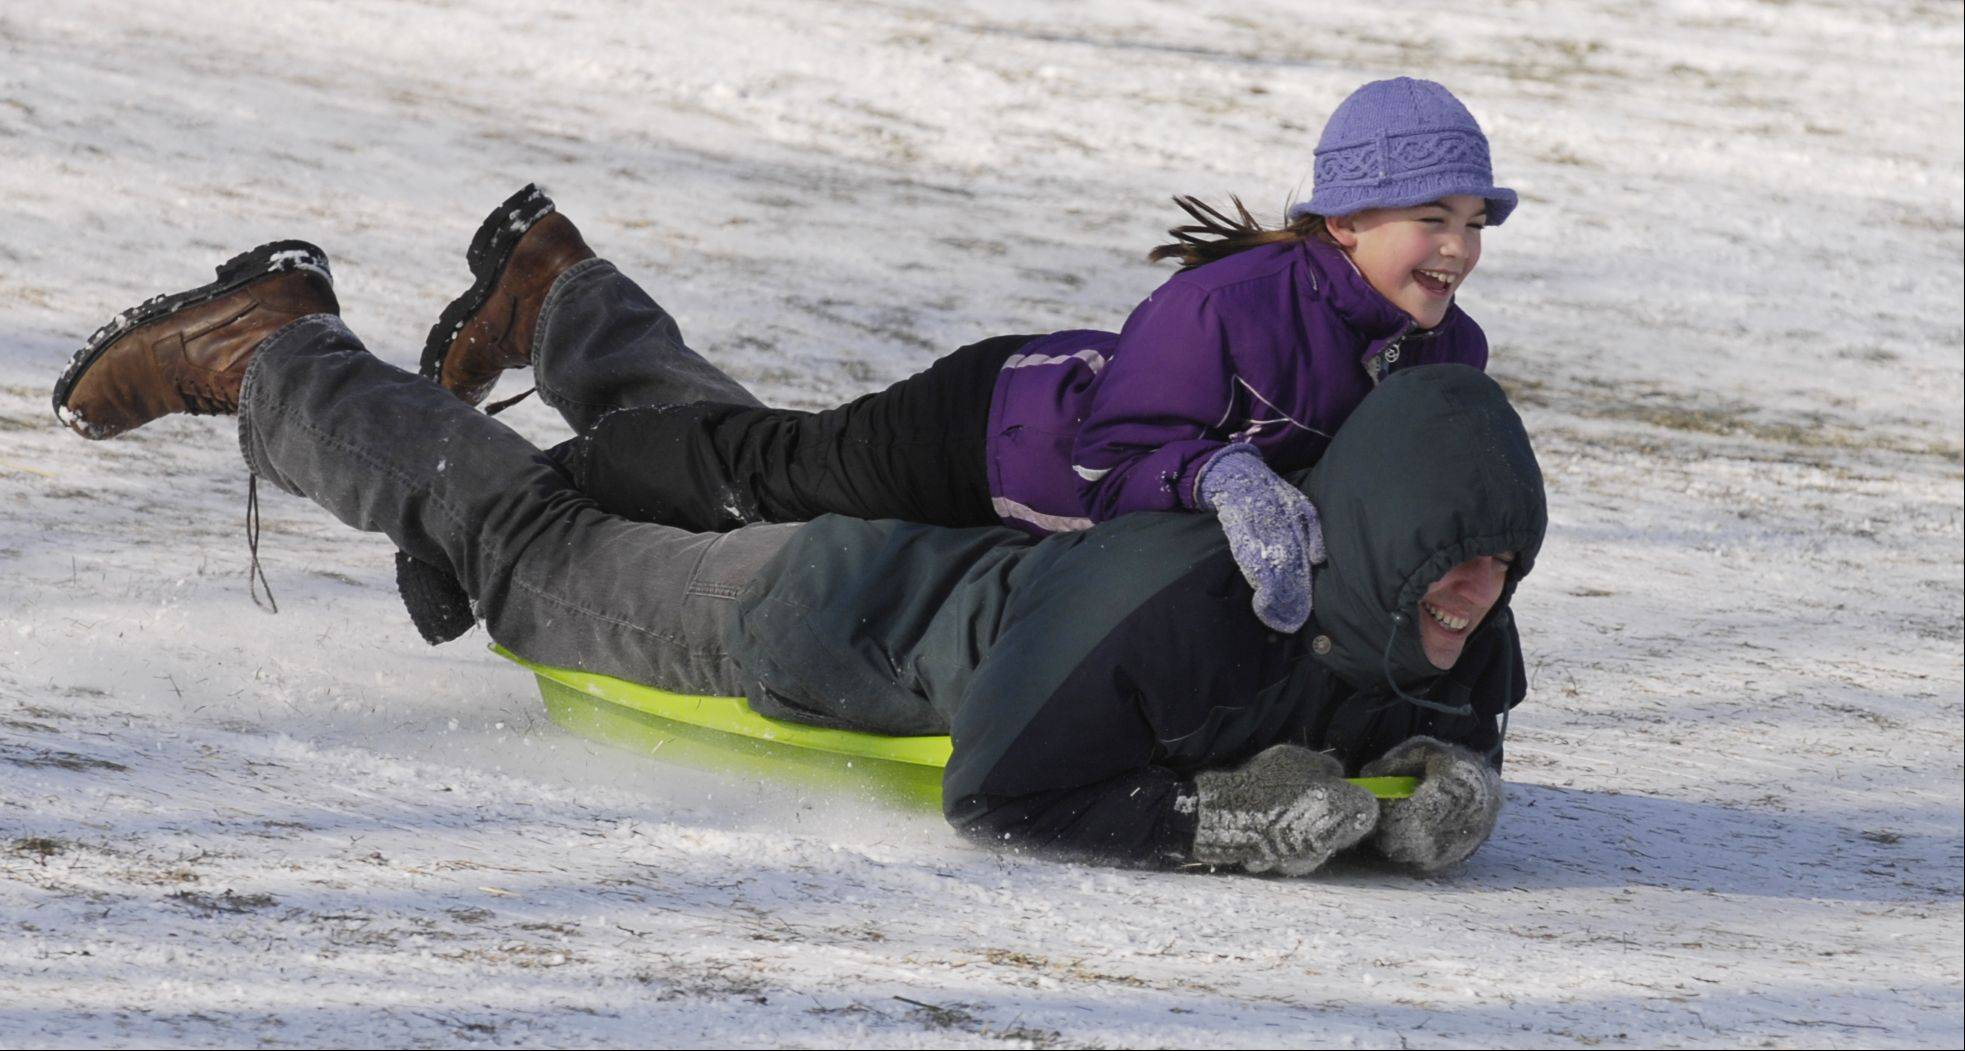 Doug Pekny and his daughter Noelle, 8, of Glen Ellyn, enjoy the day sledding at Newton Park in Glen Ellyn Sunday.